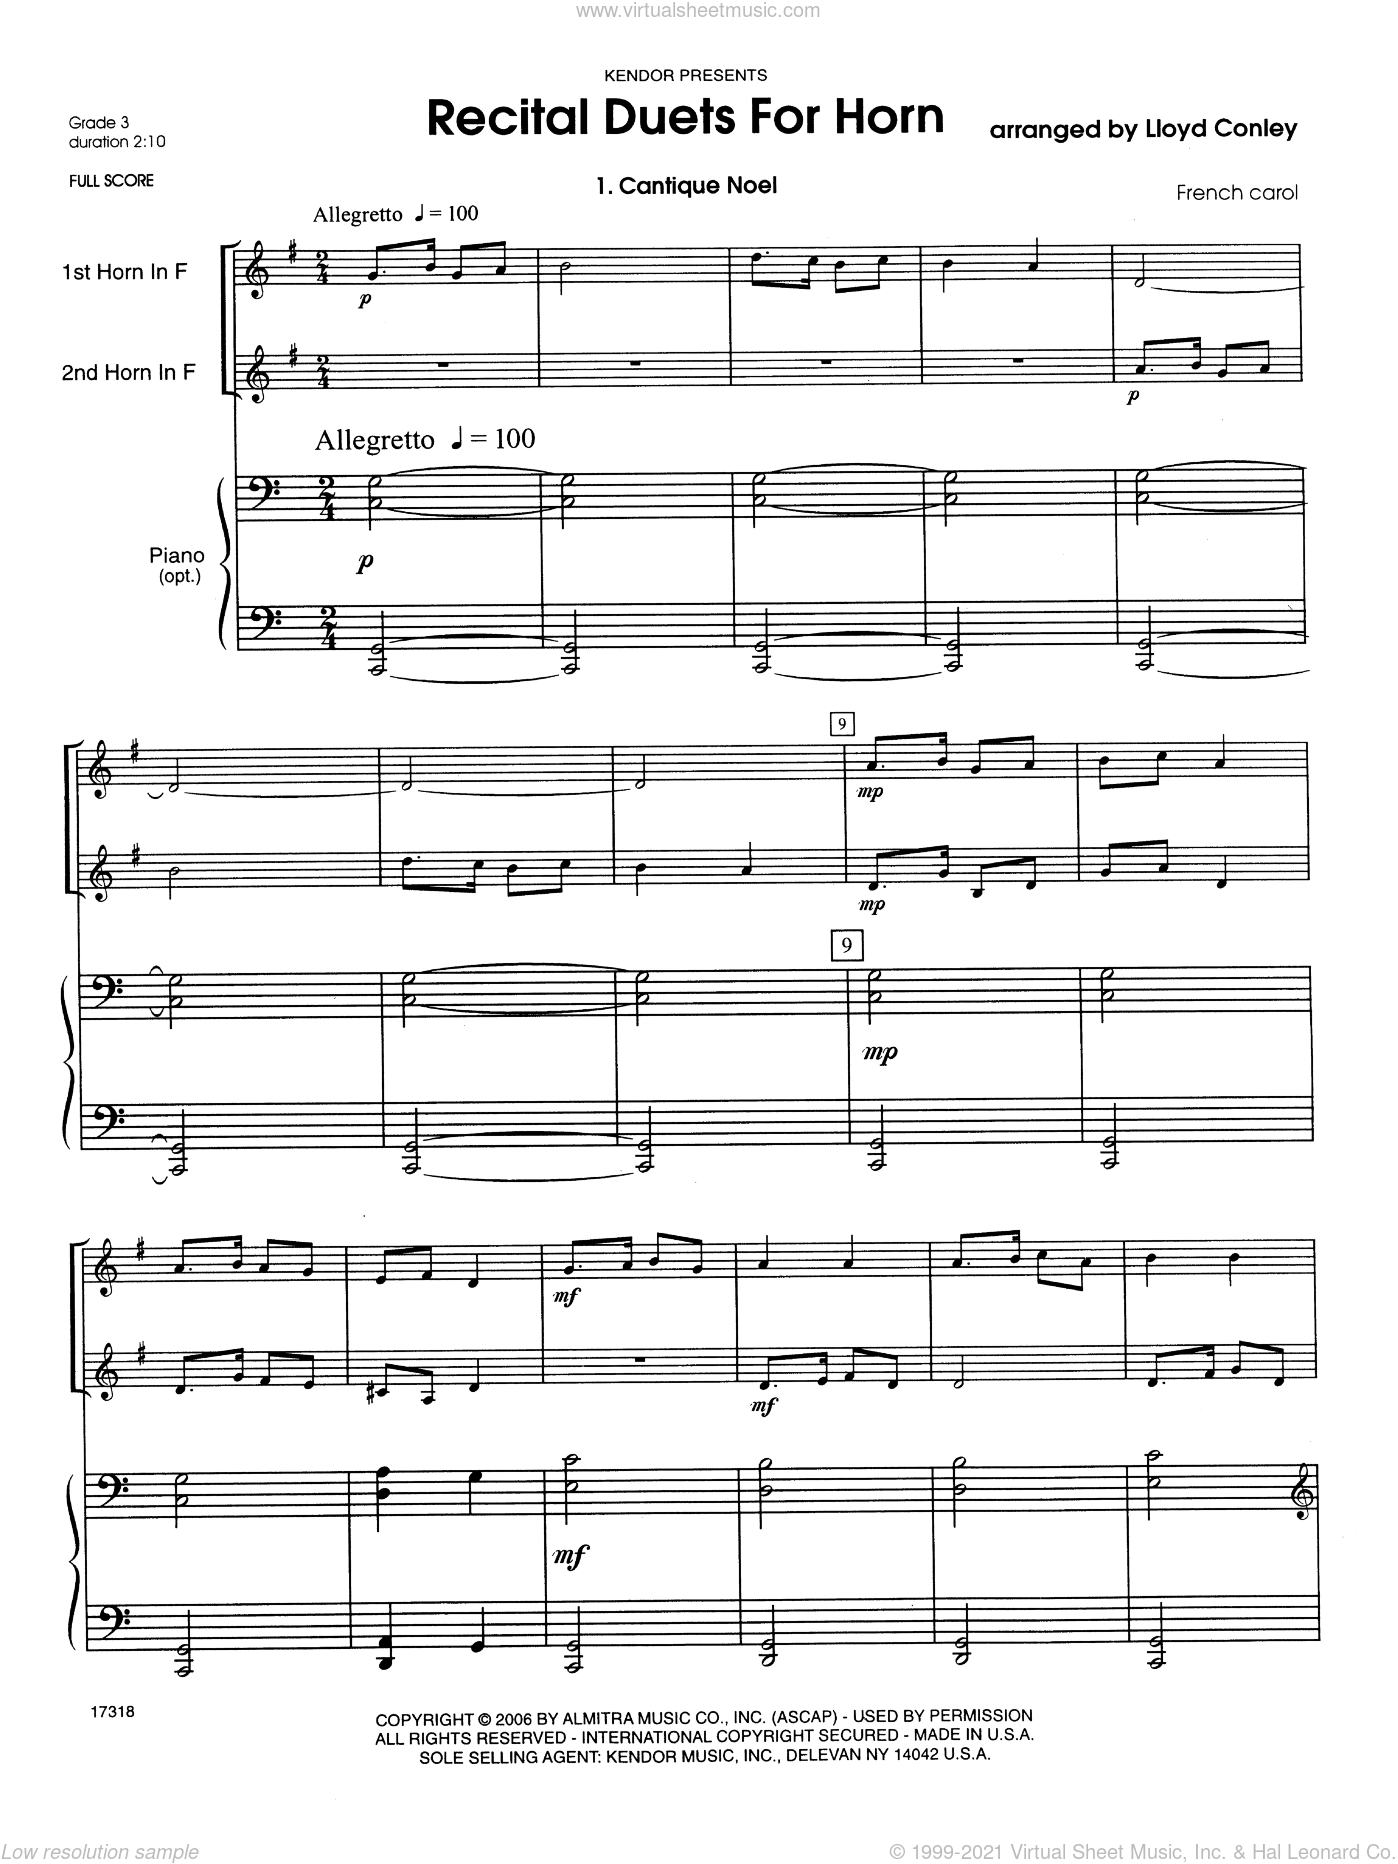 Recital Duets For Horn sheet music for two horns and piano (full score) by Conley